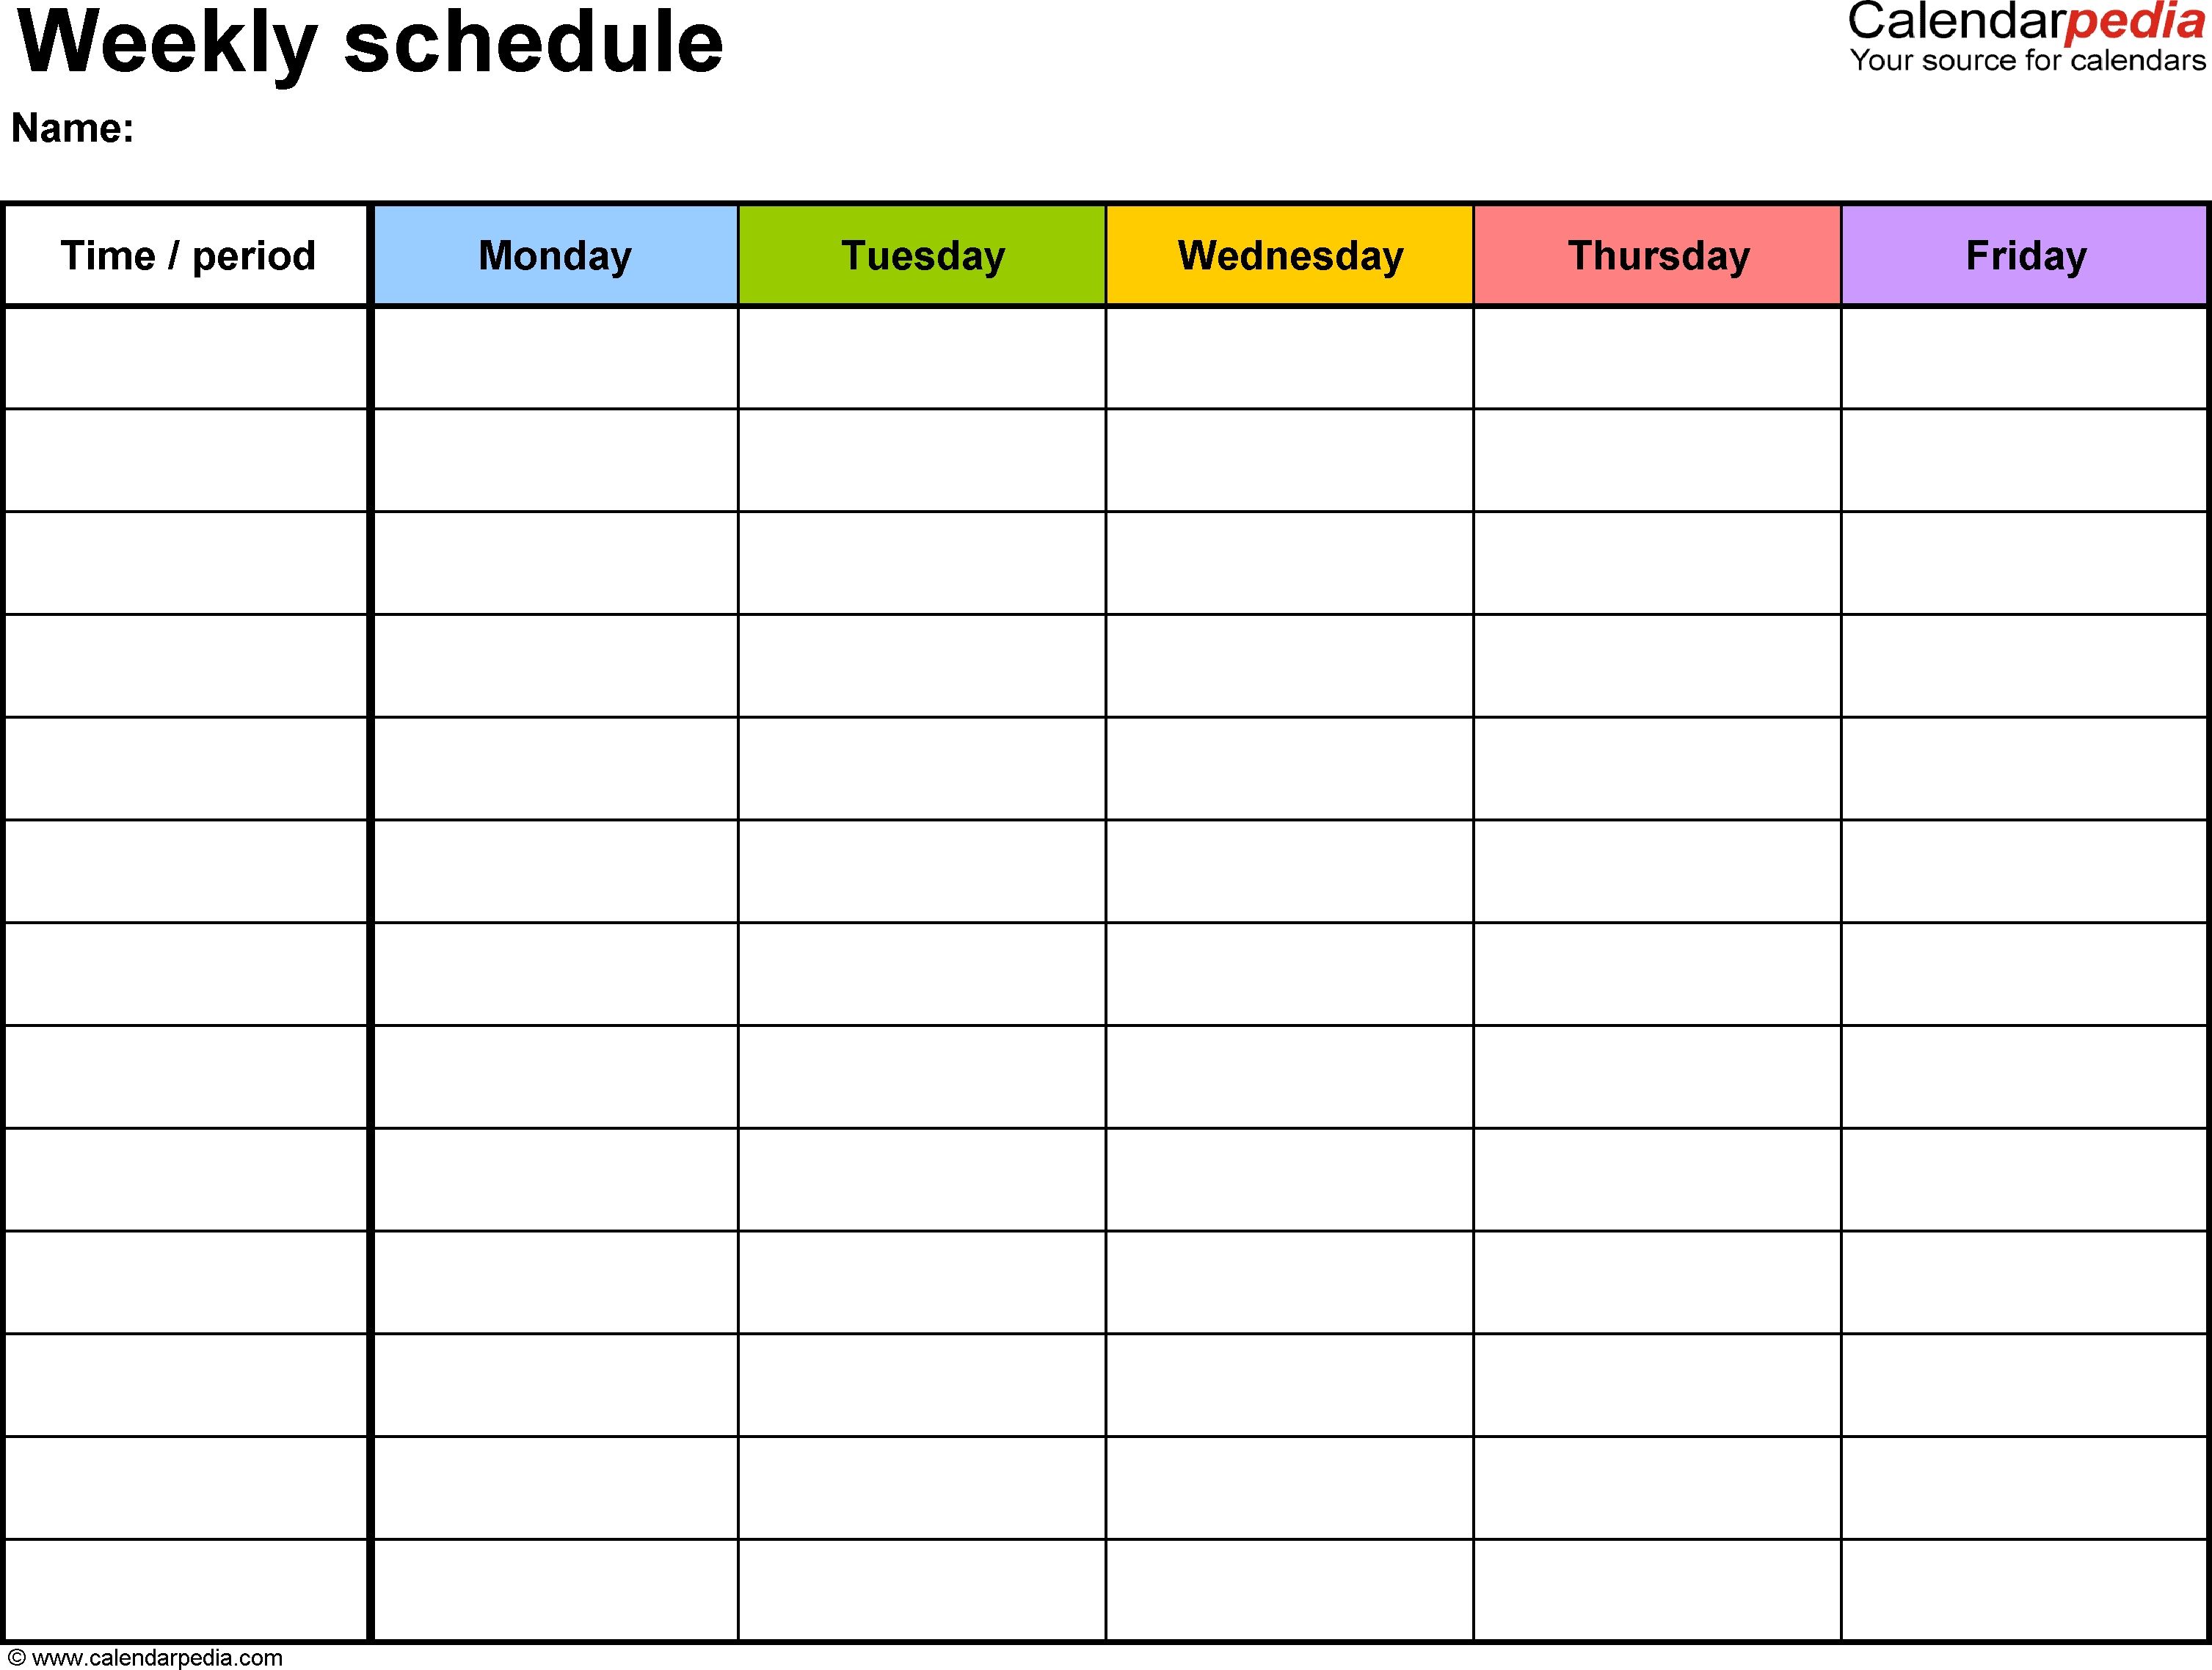 Free Weekly Schedule Templates For Word - 18 Templates within 5 Day Week Blank Calendar Printable